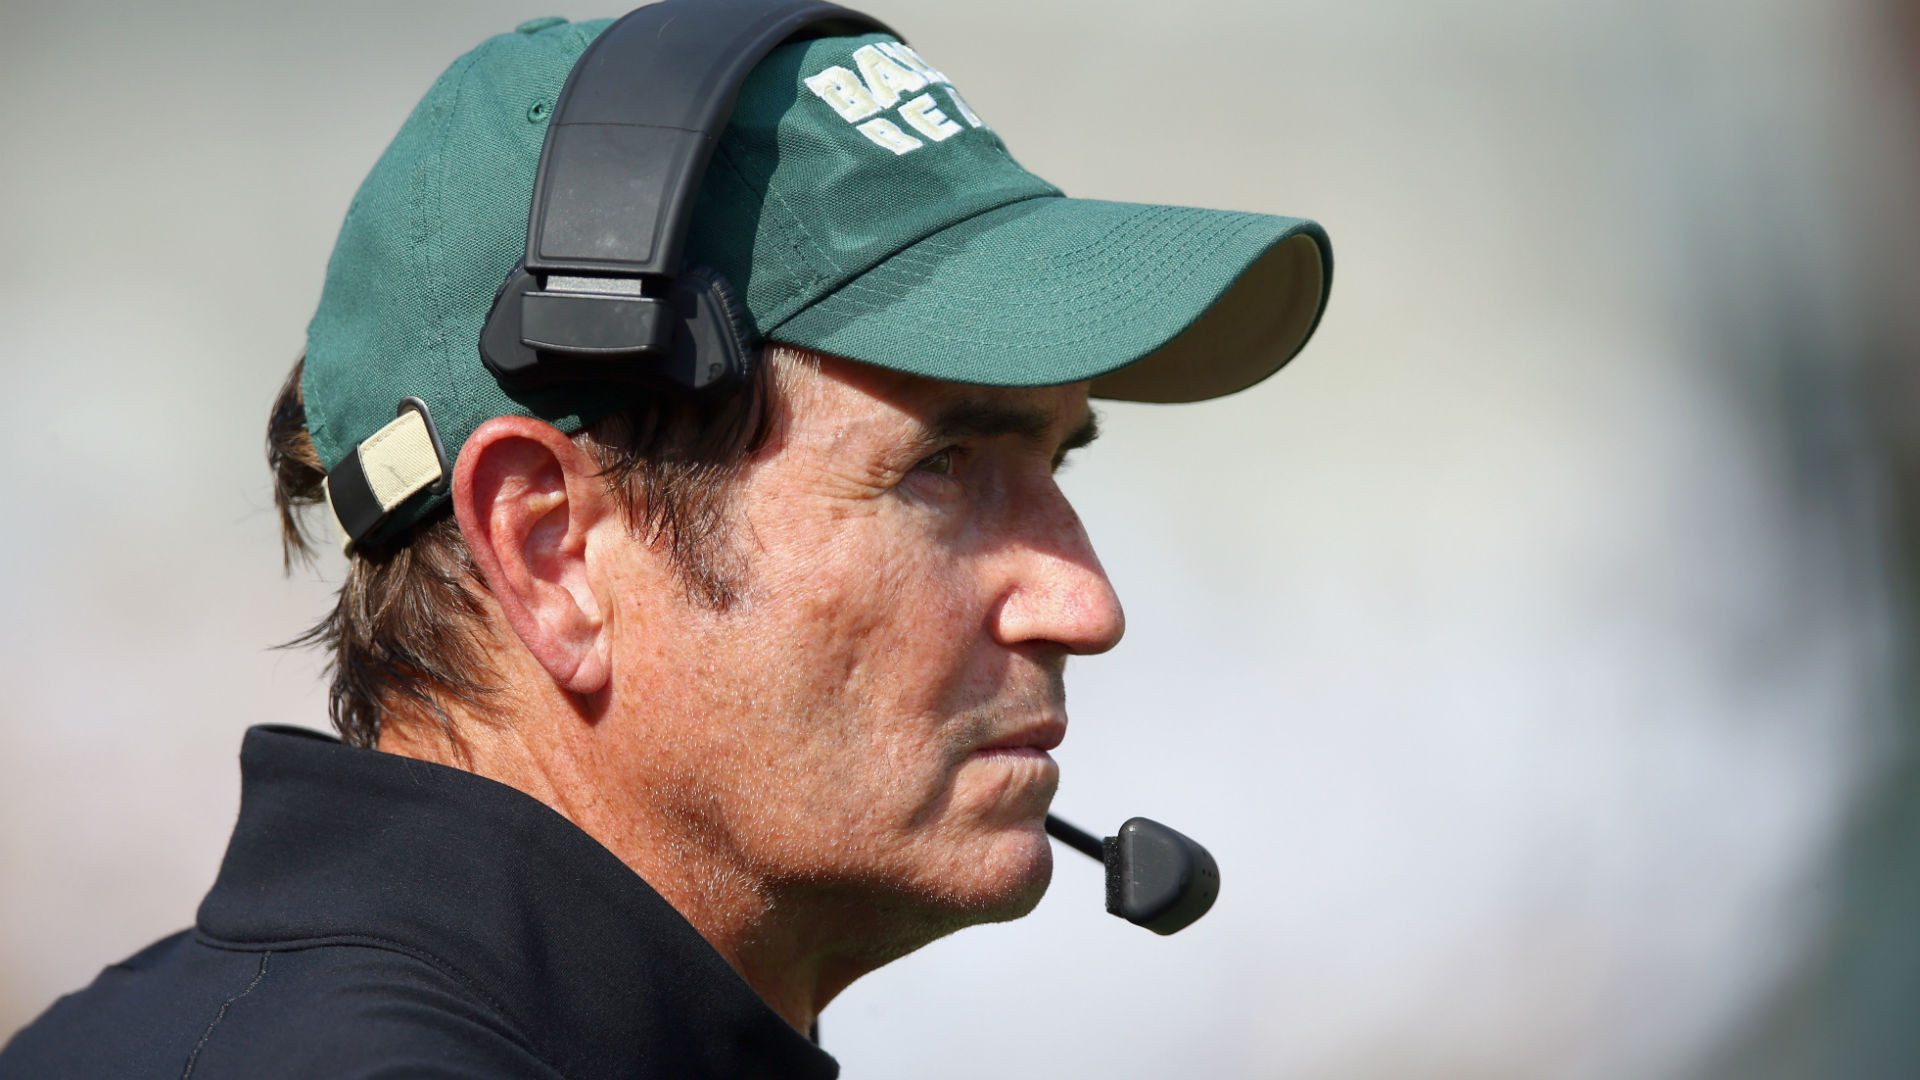 Art-briles-052716-getty-ftr_qy9q8uoc9pzx1m0bqye81g7sp